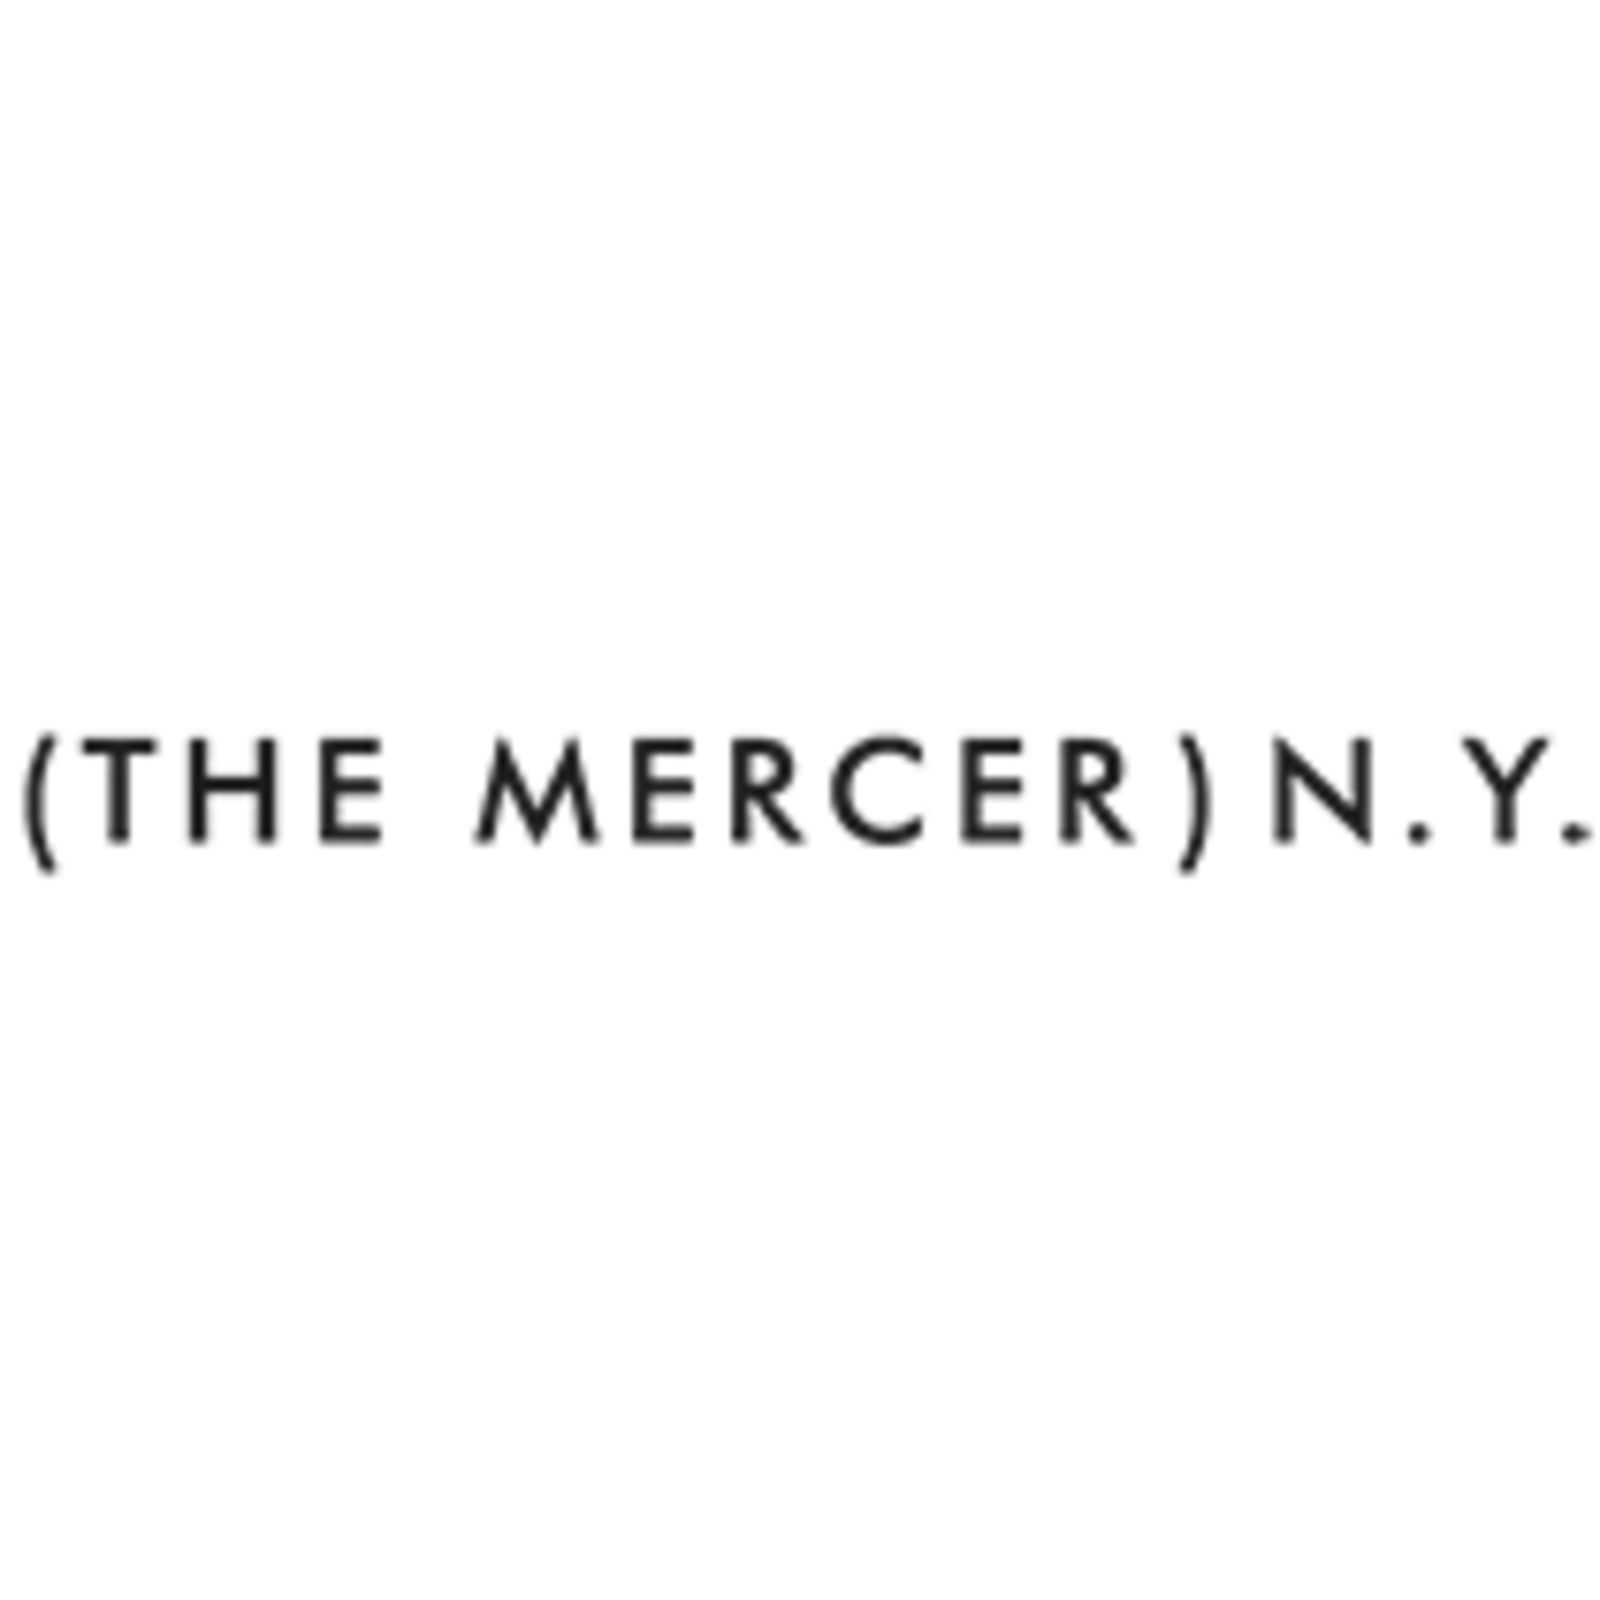 THE MERCER N.Y.